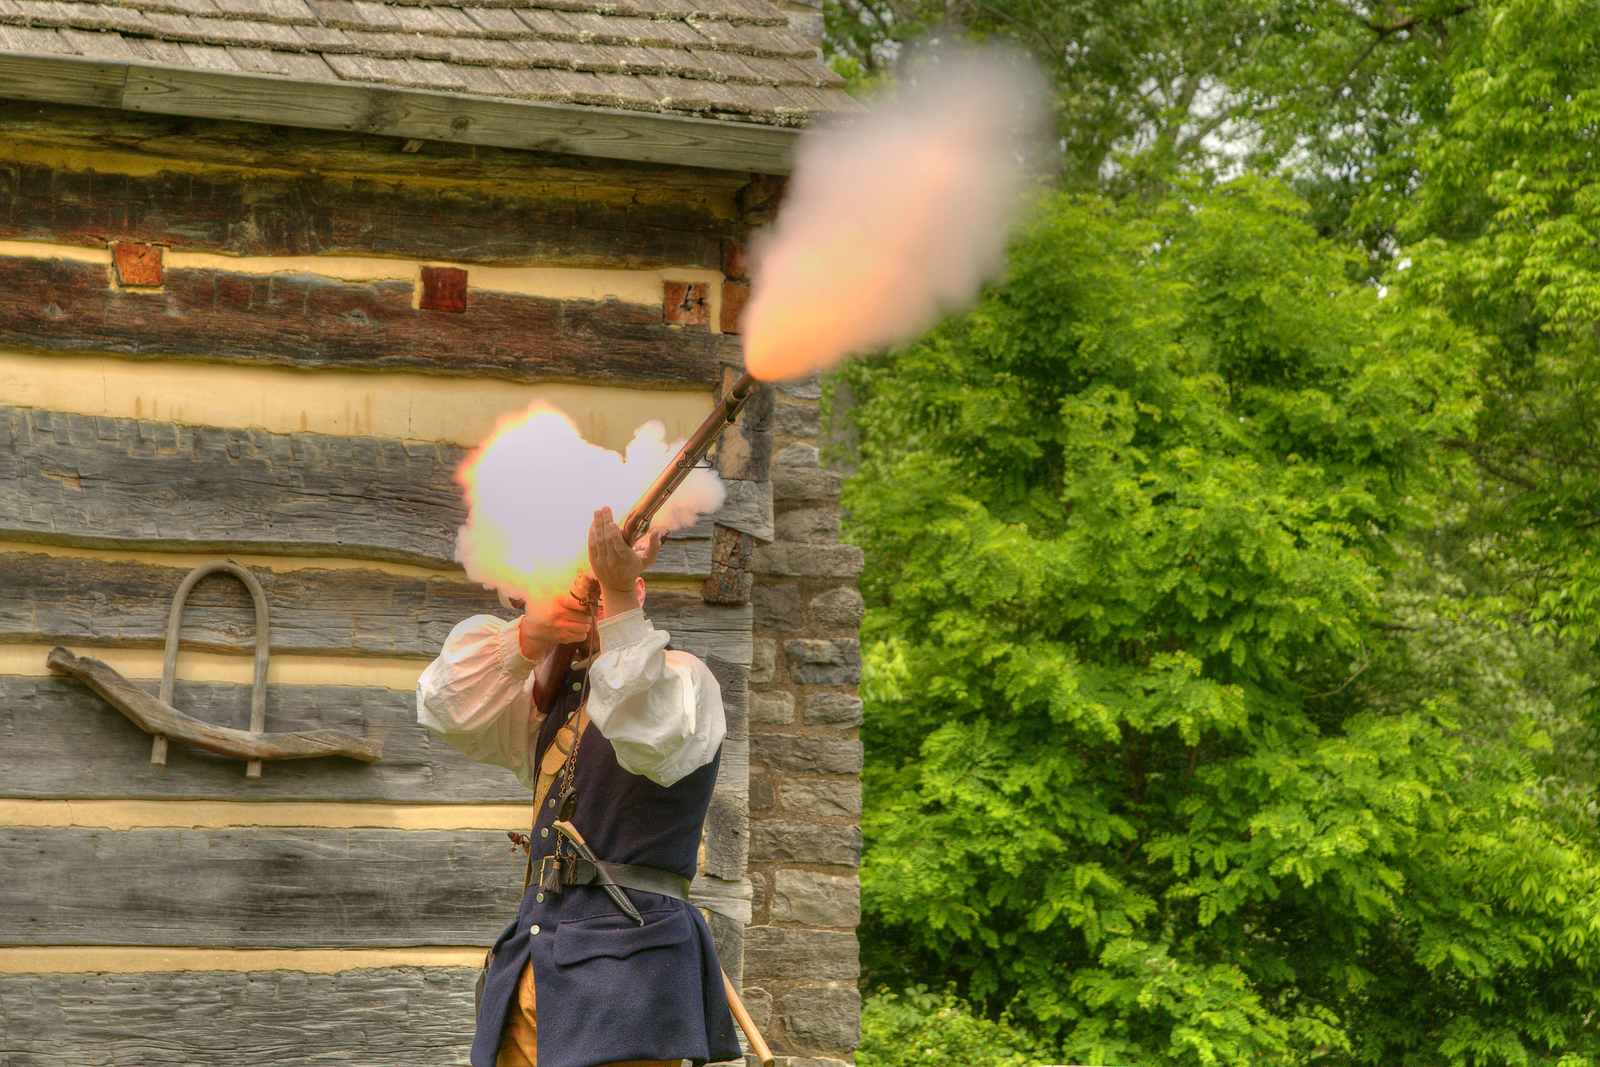 Re-enactor Joseph Gamble, portraying a 1780's frontier settler, fires a flint-lock musket at Davy Crockett Birthplace State Park in Limestone, TN on Friday, June 6, 2014. Copyright 2014 Jason Barnette